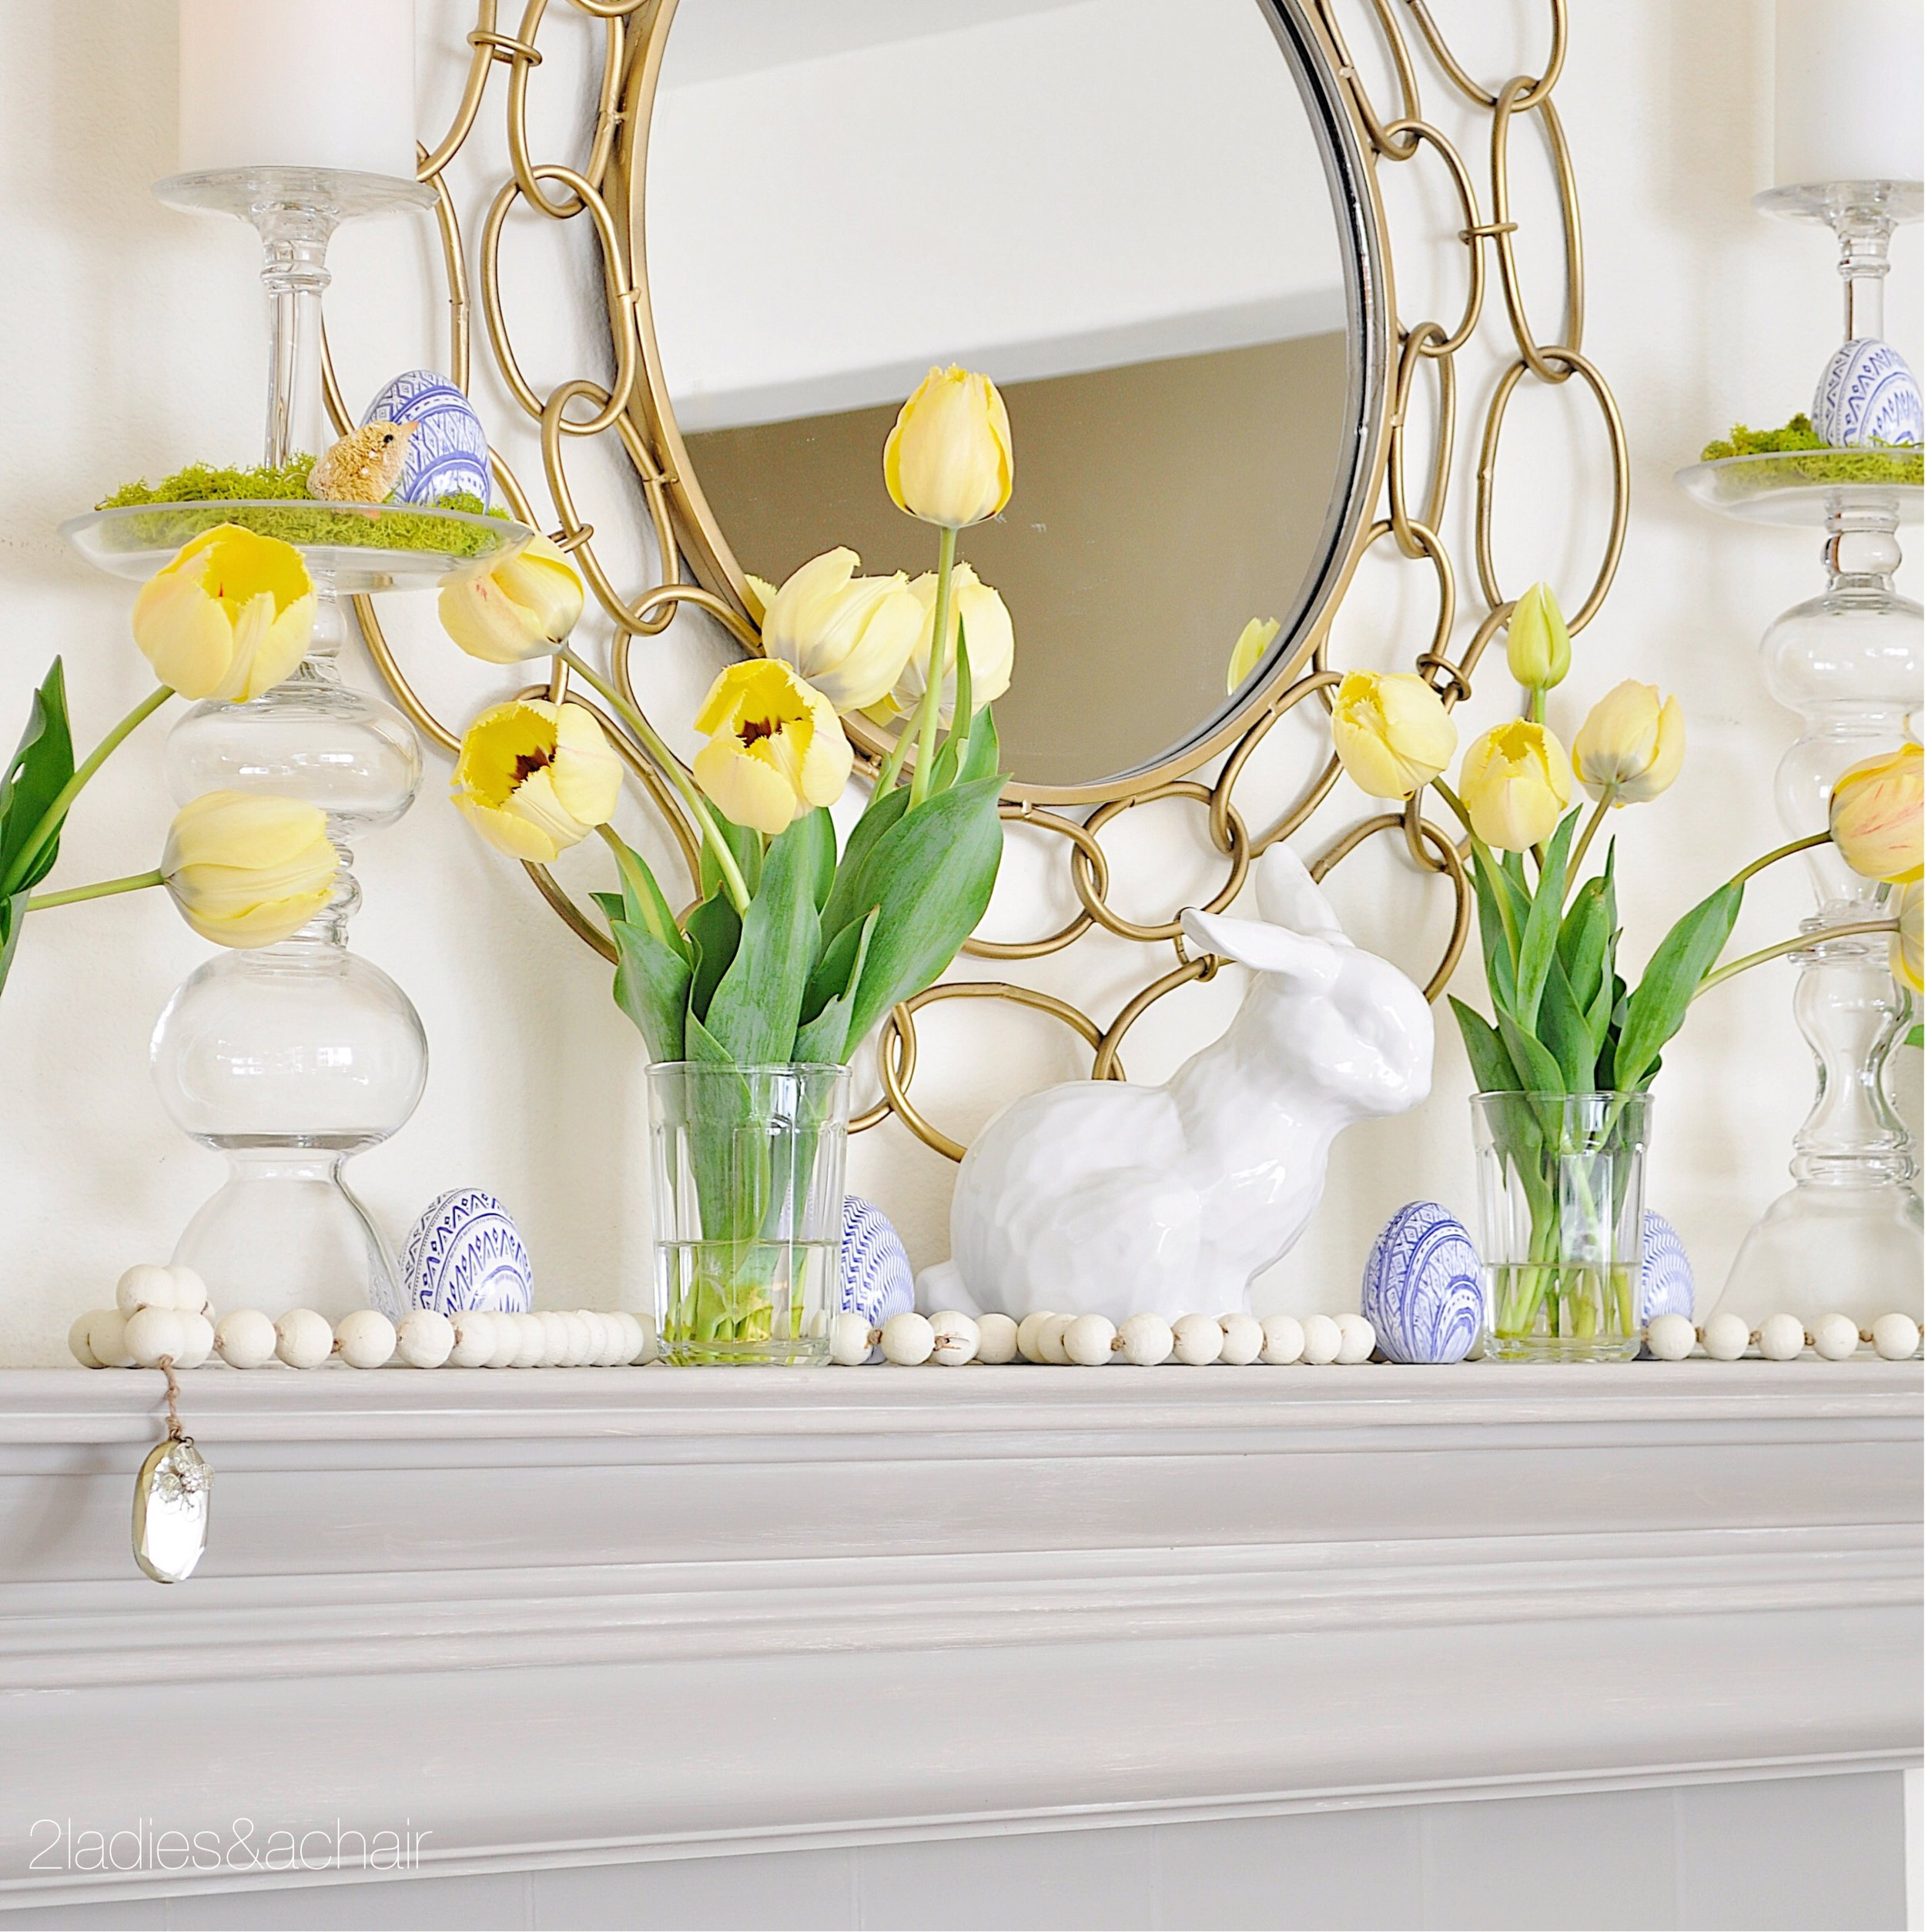 easter mantel decor IMG_1887.JPG